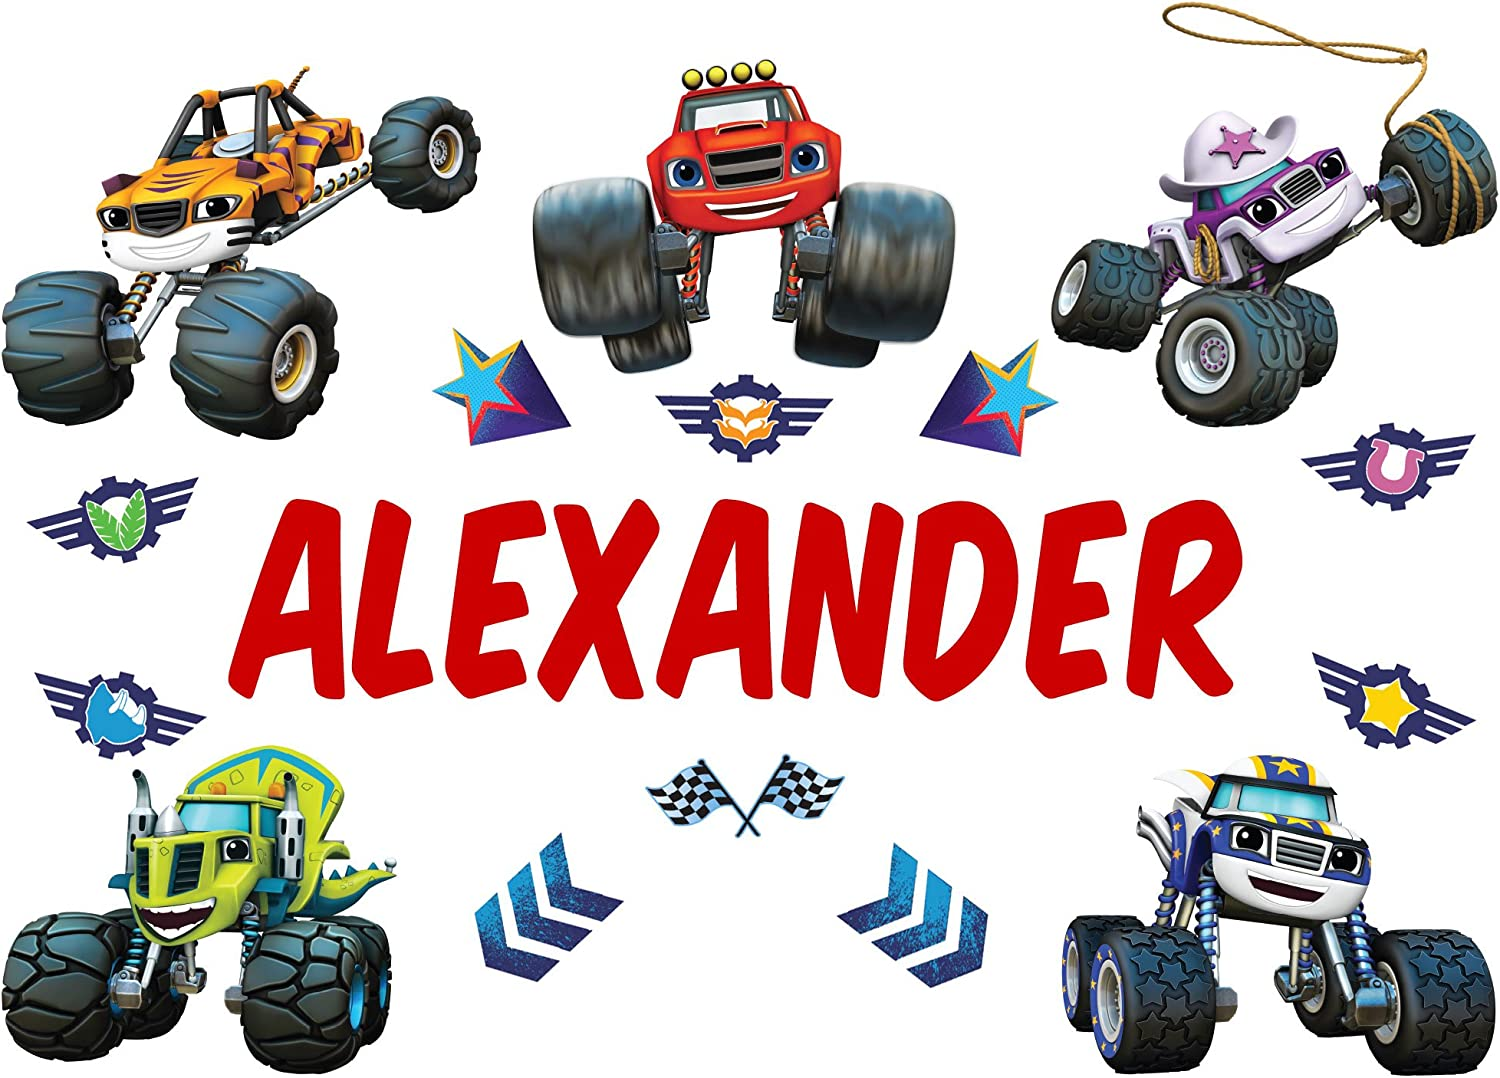 Oliver's Labels Personalized Blaze and Kids Max 53% OFF Machines Monster free The